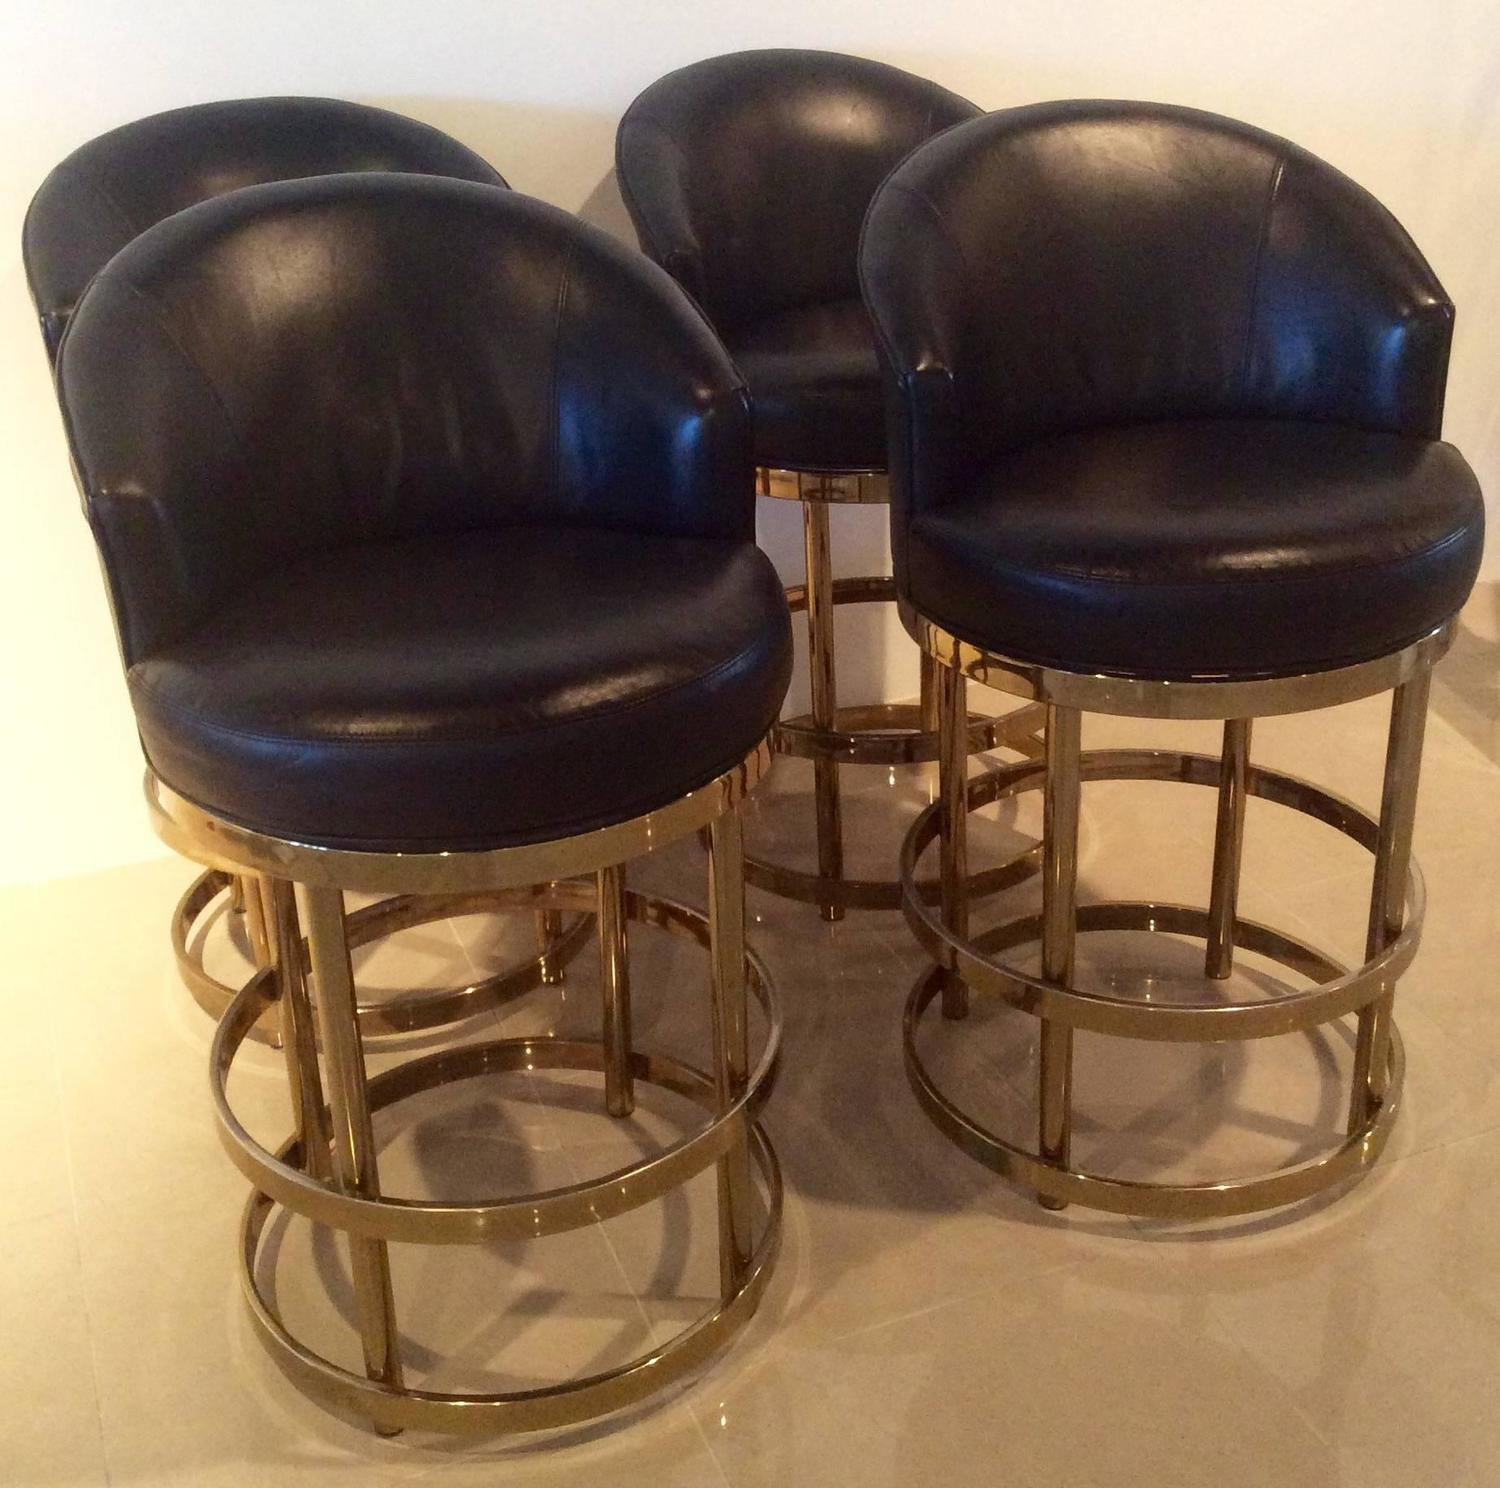 Brass Swivel Counter Bar Stools Vintage Set 4 Kitchen